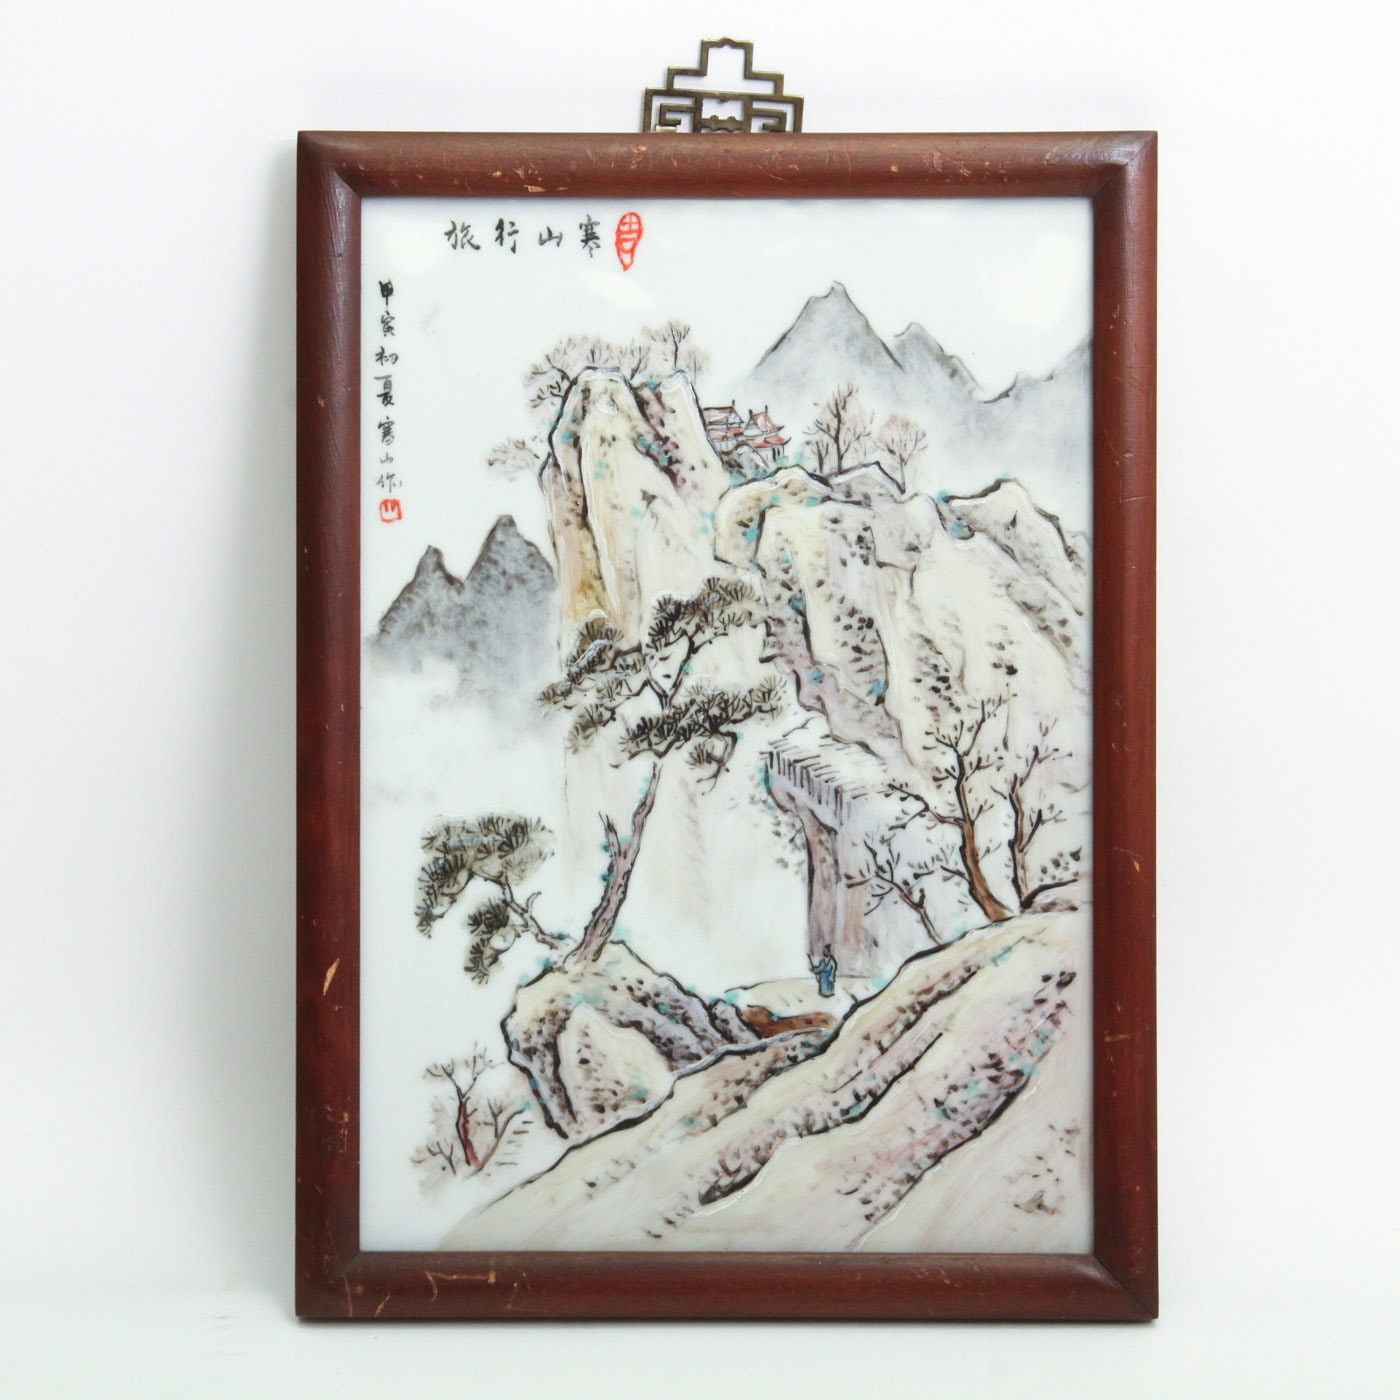 Framed Chinese Painting on Marble